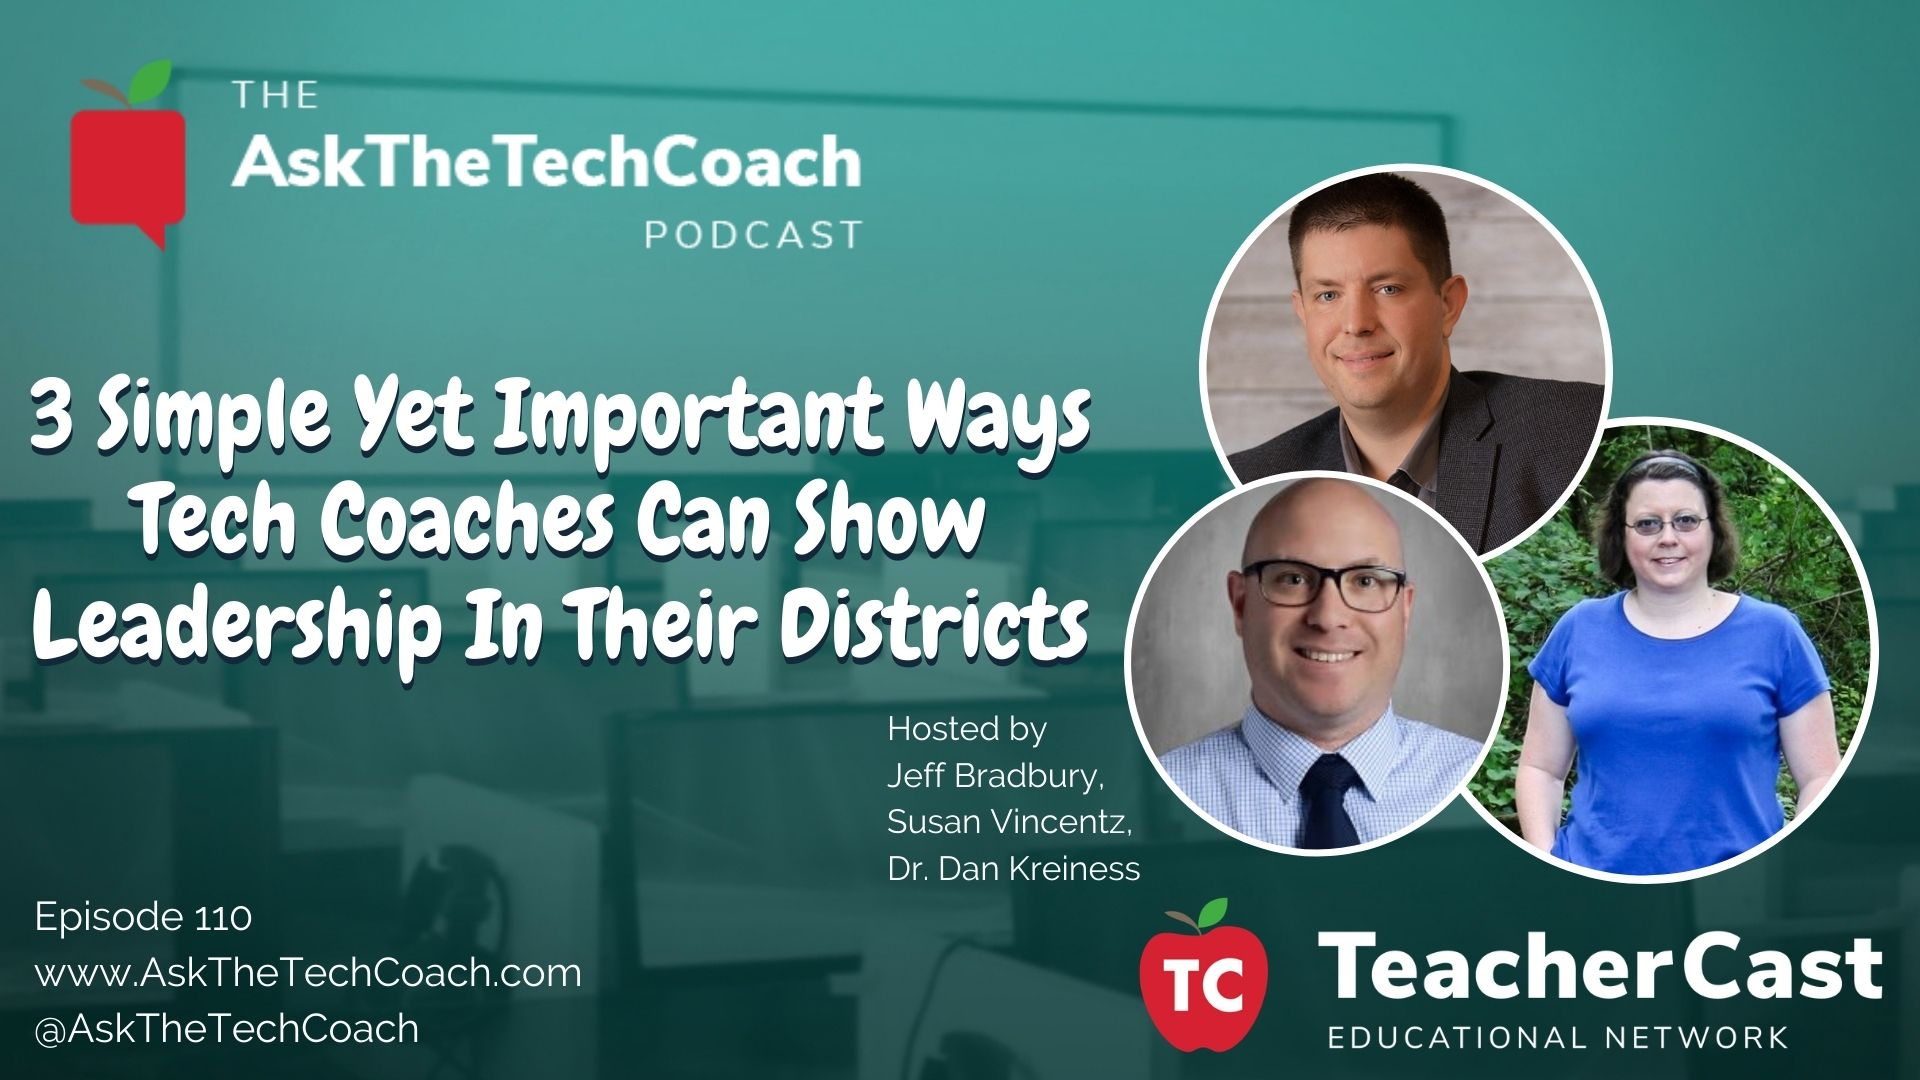 Showing Leadership As A Tech Coach